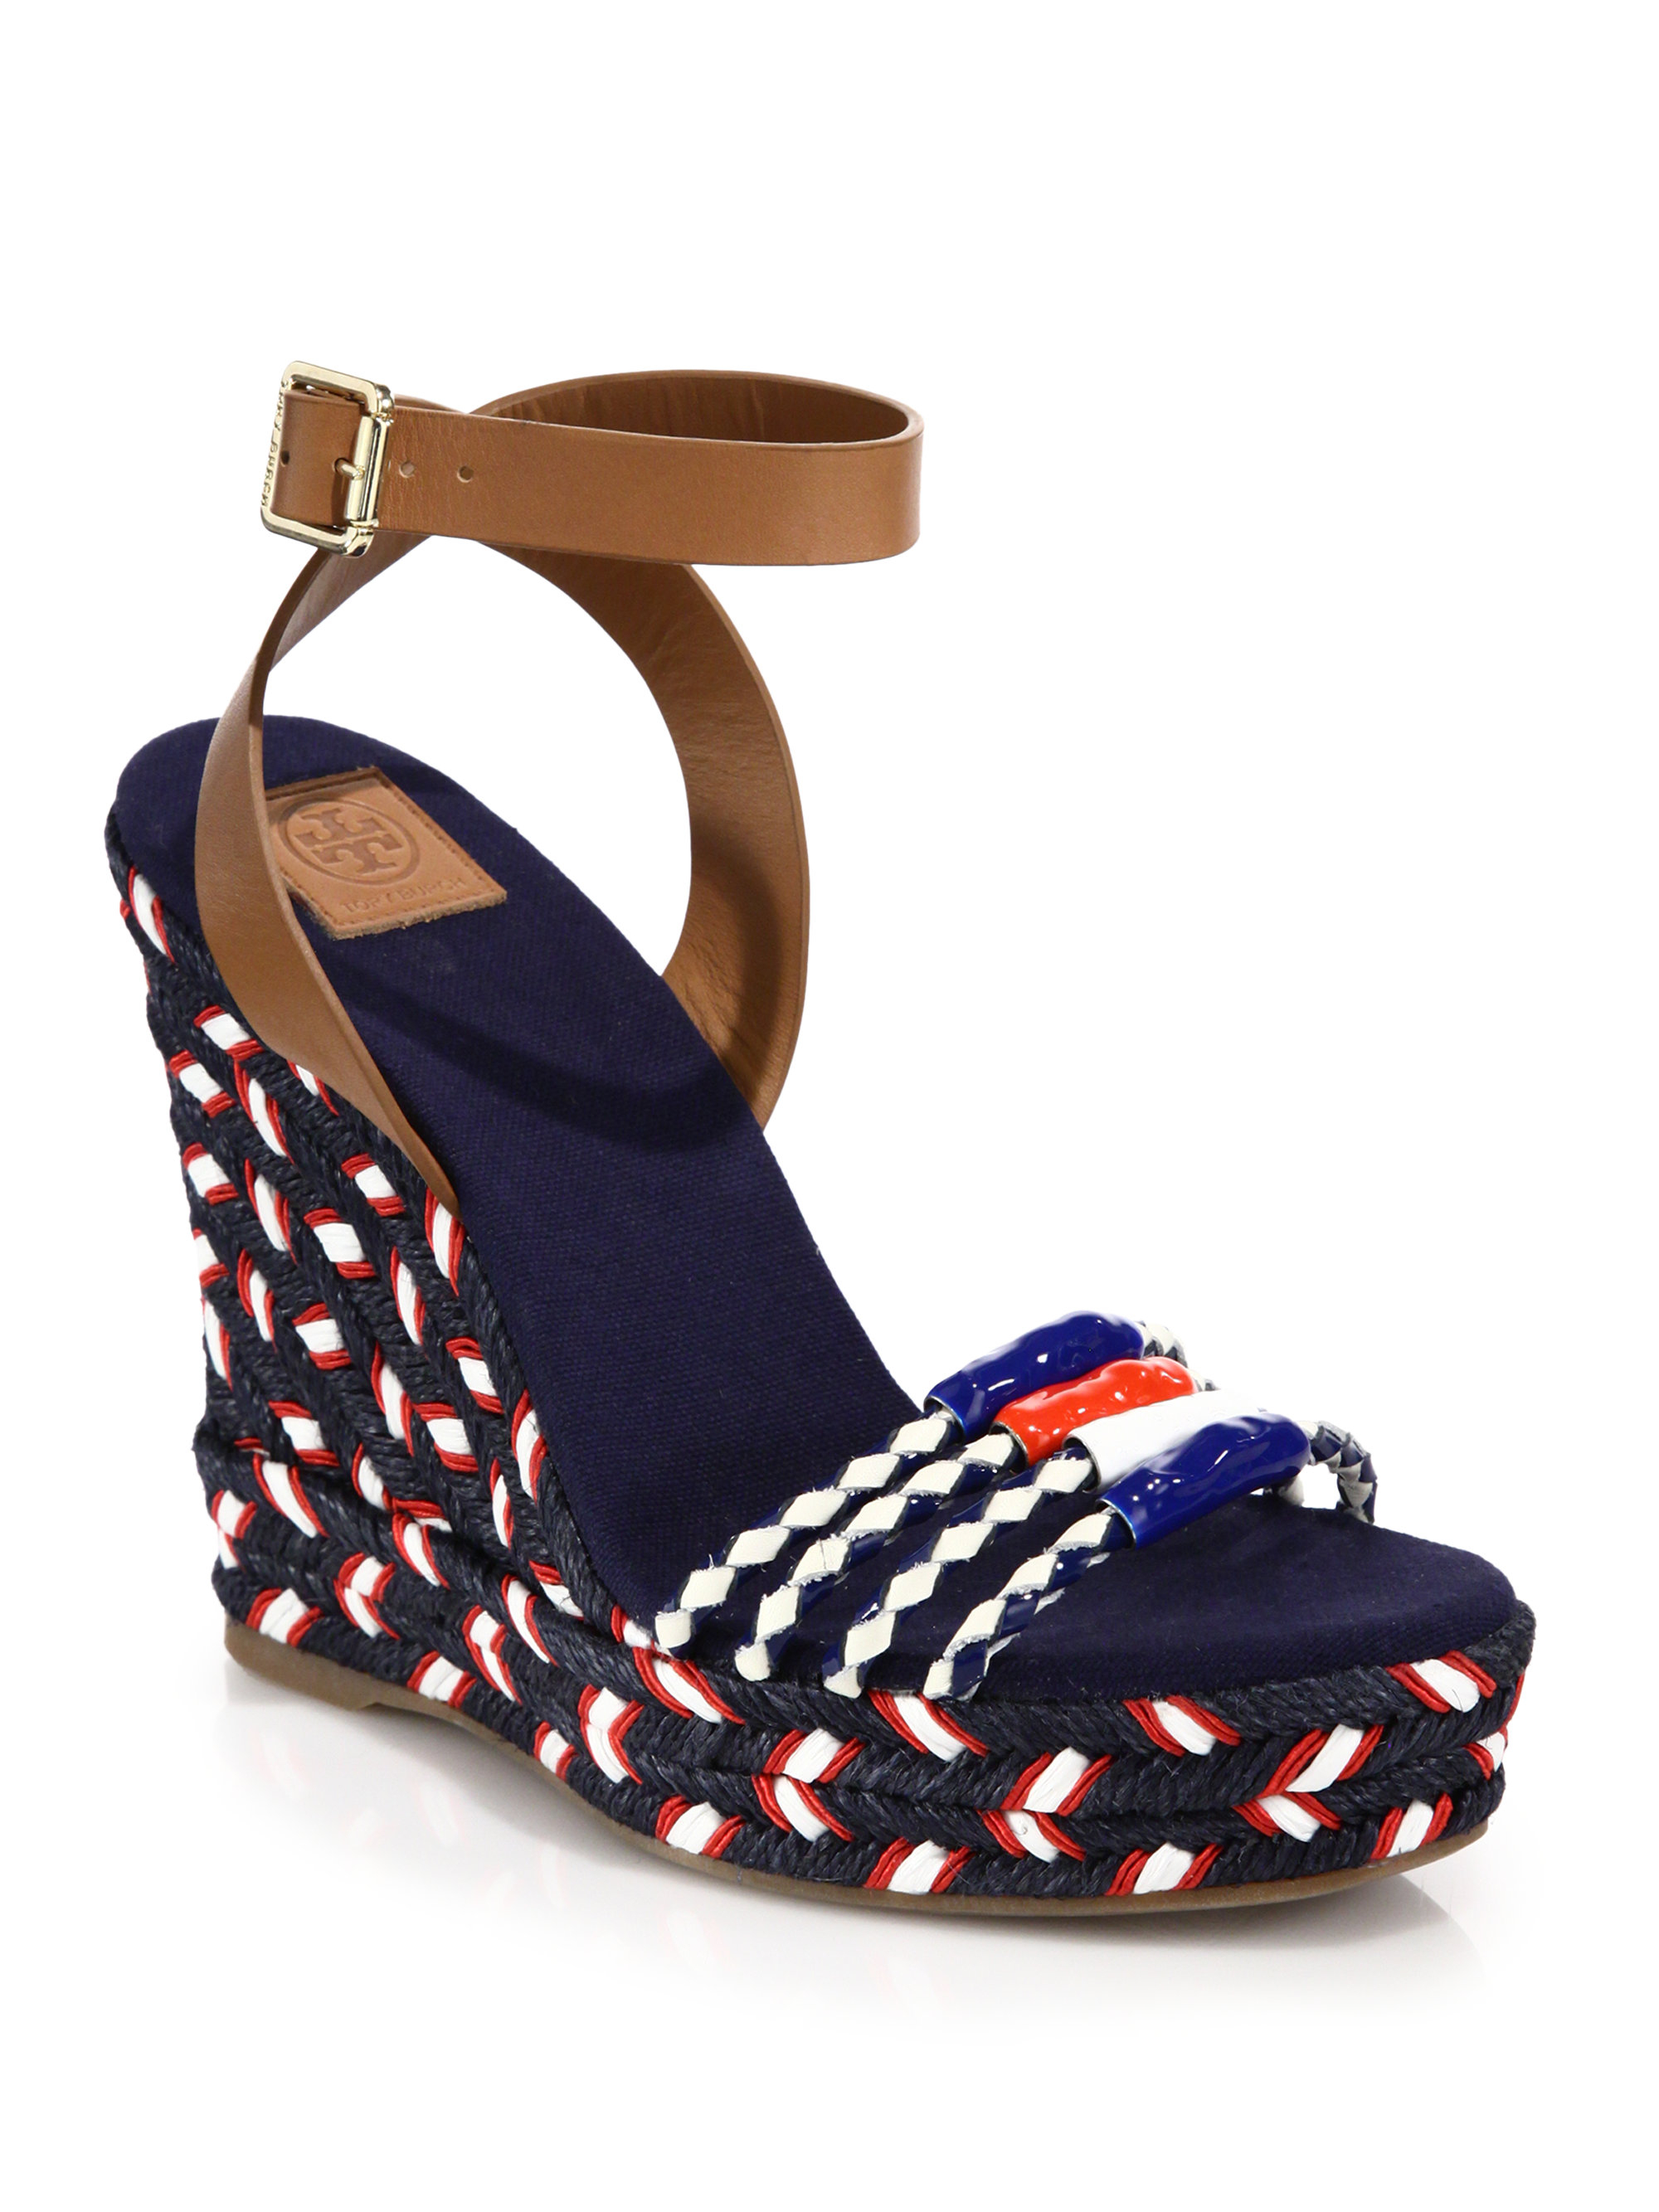 61403244dc1d0 Lyst - Tory Burch Leather   Braided Espadrille Wedge Sandals in Blue